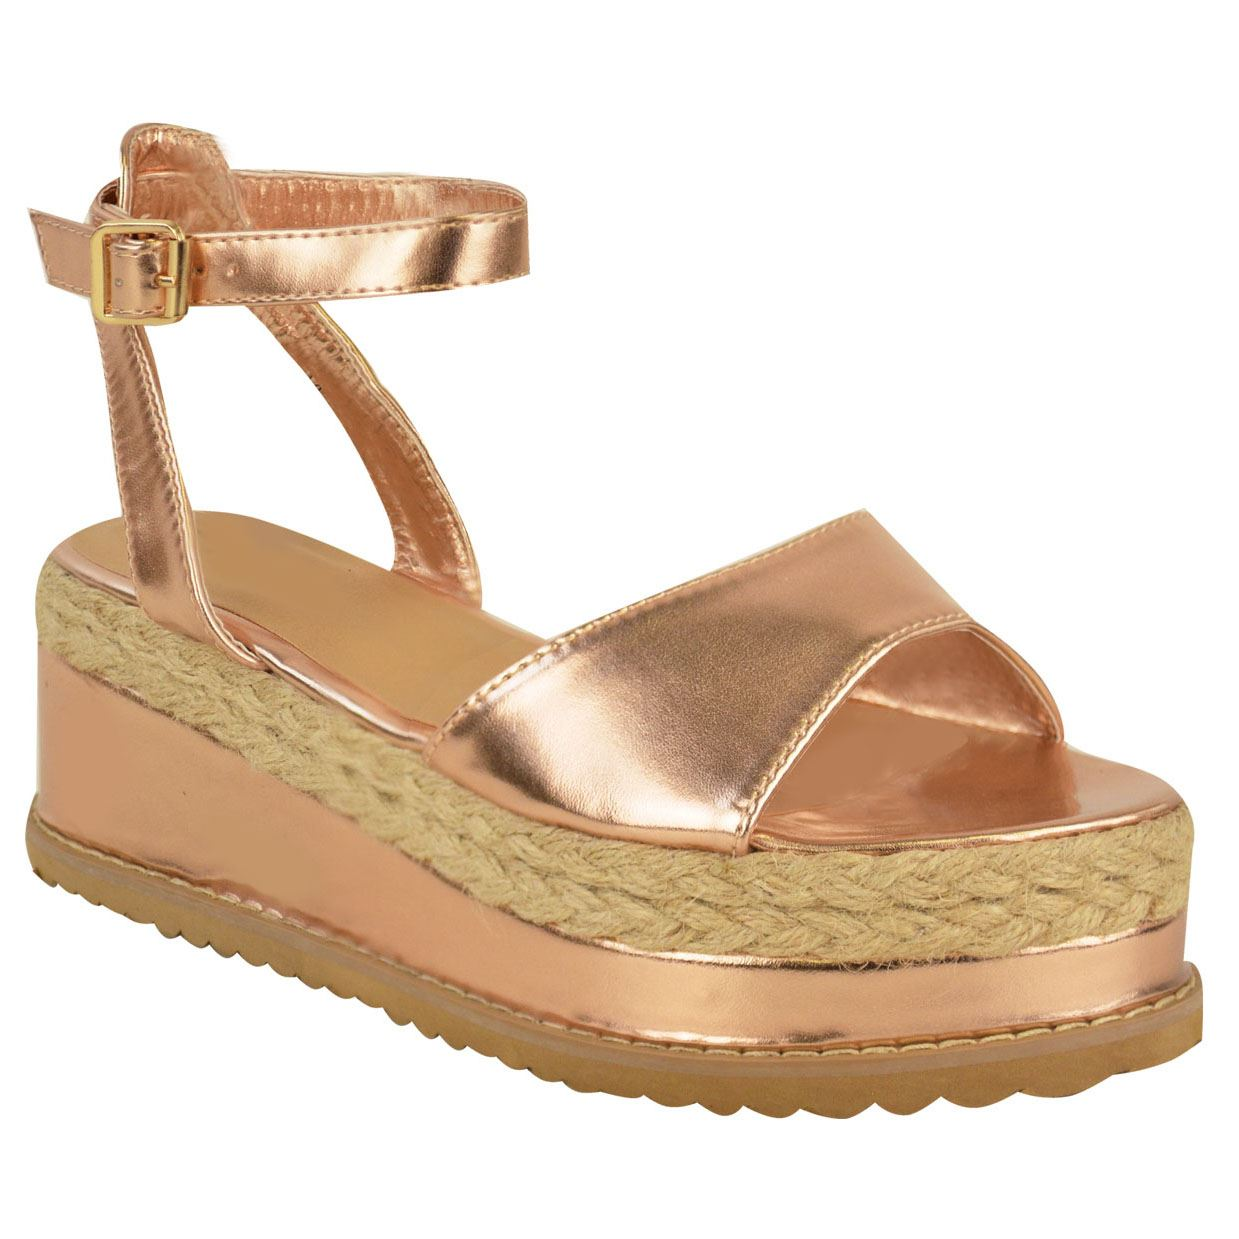 Womens-Ladies-Flat-Low-Wedge-Espadrille-Sandals-Lace-Platform-Summer-Shoes-Size